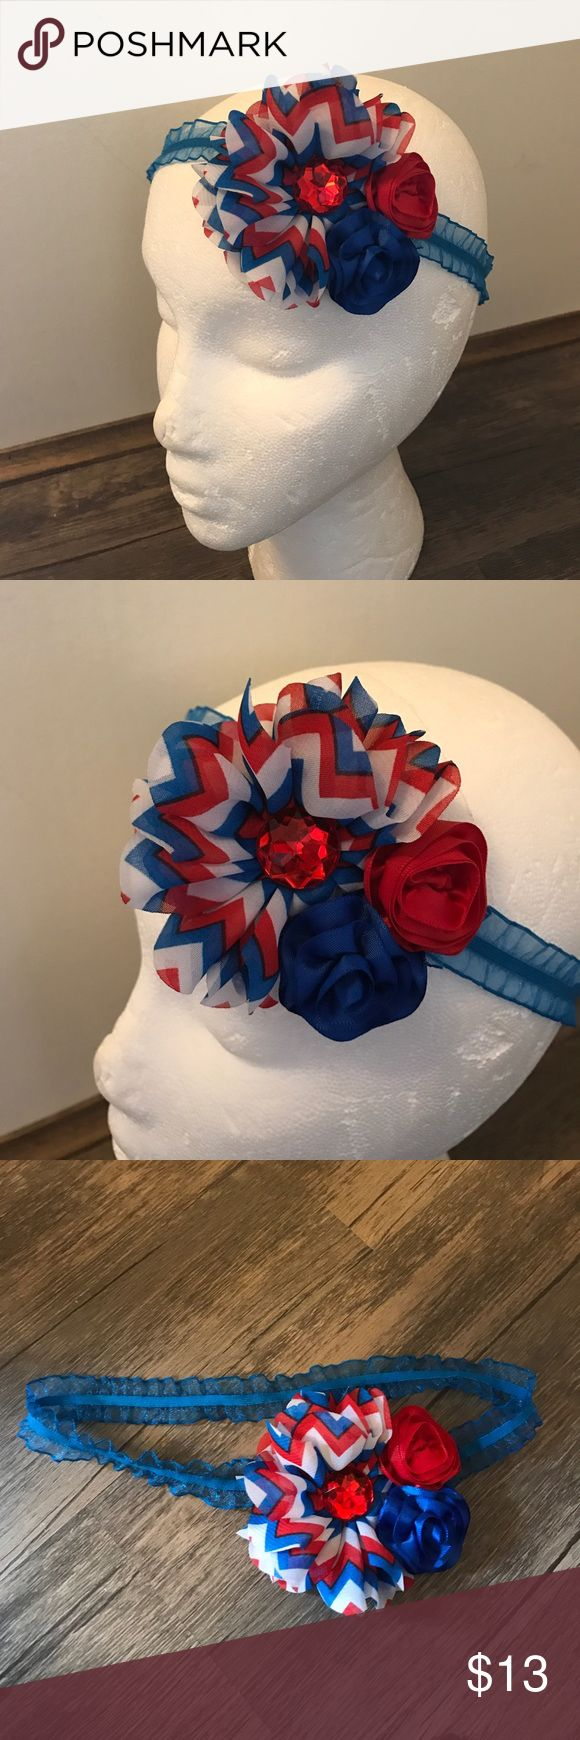 Last Chance - Red White and Blue Floral Headband Worn once by my daughter when she was about 2 or 3. Elastic band. Measurement is laying flat unstrectched. 4th of July Headband Boutique Accessories Hair Accessories